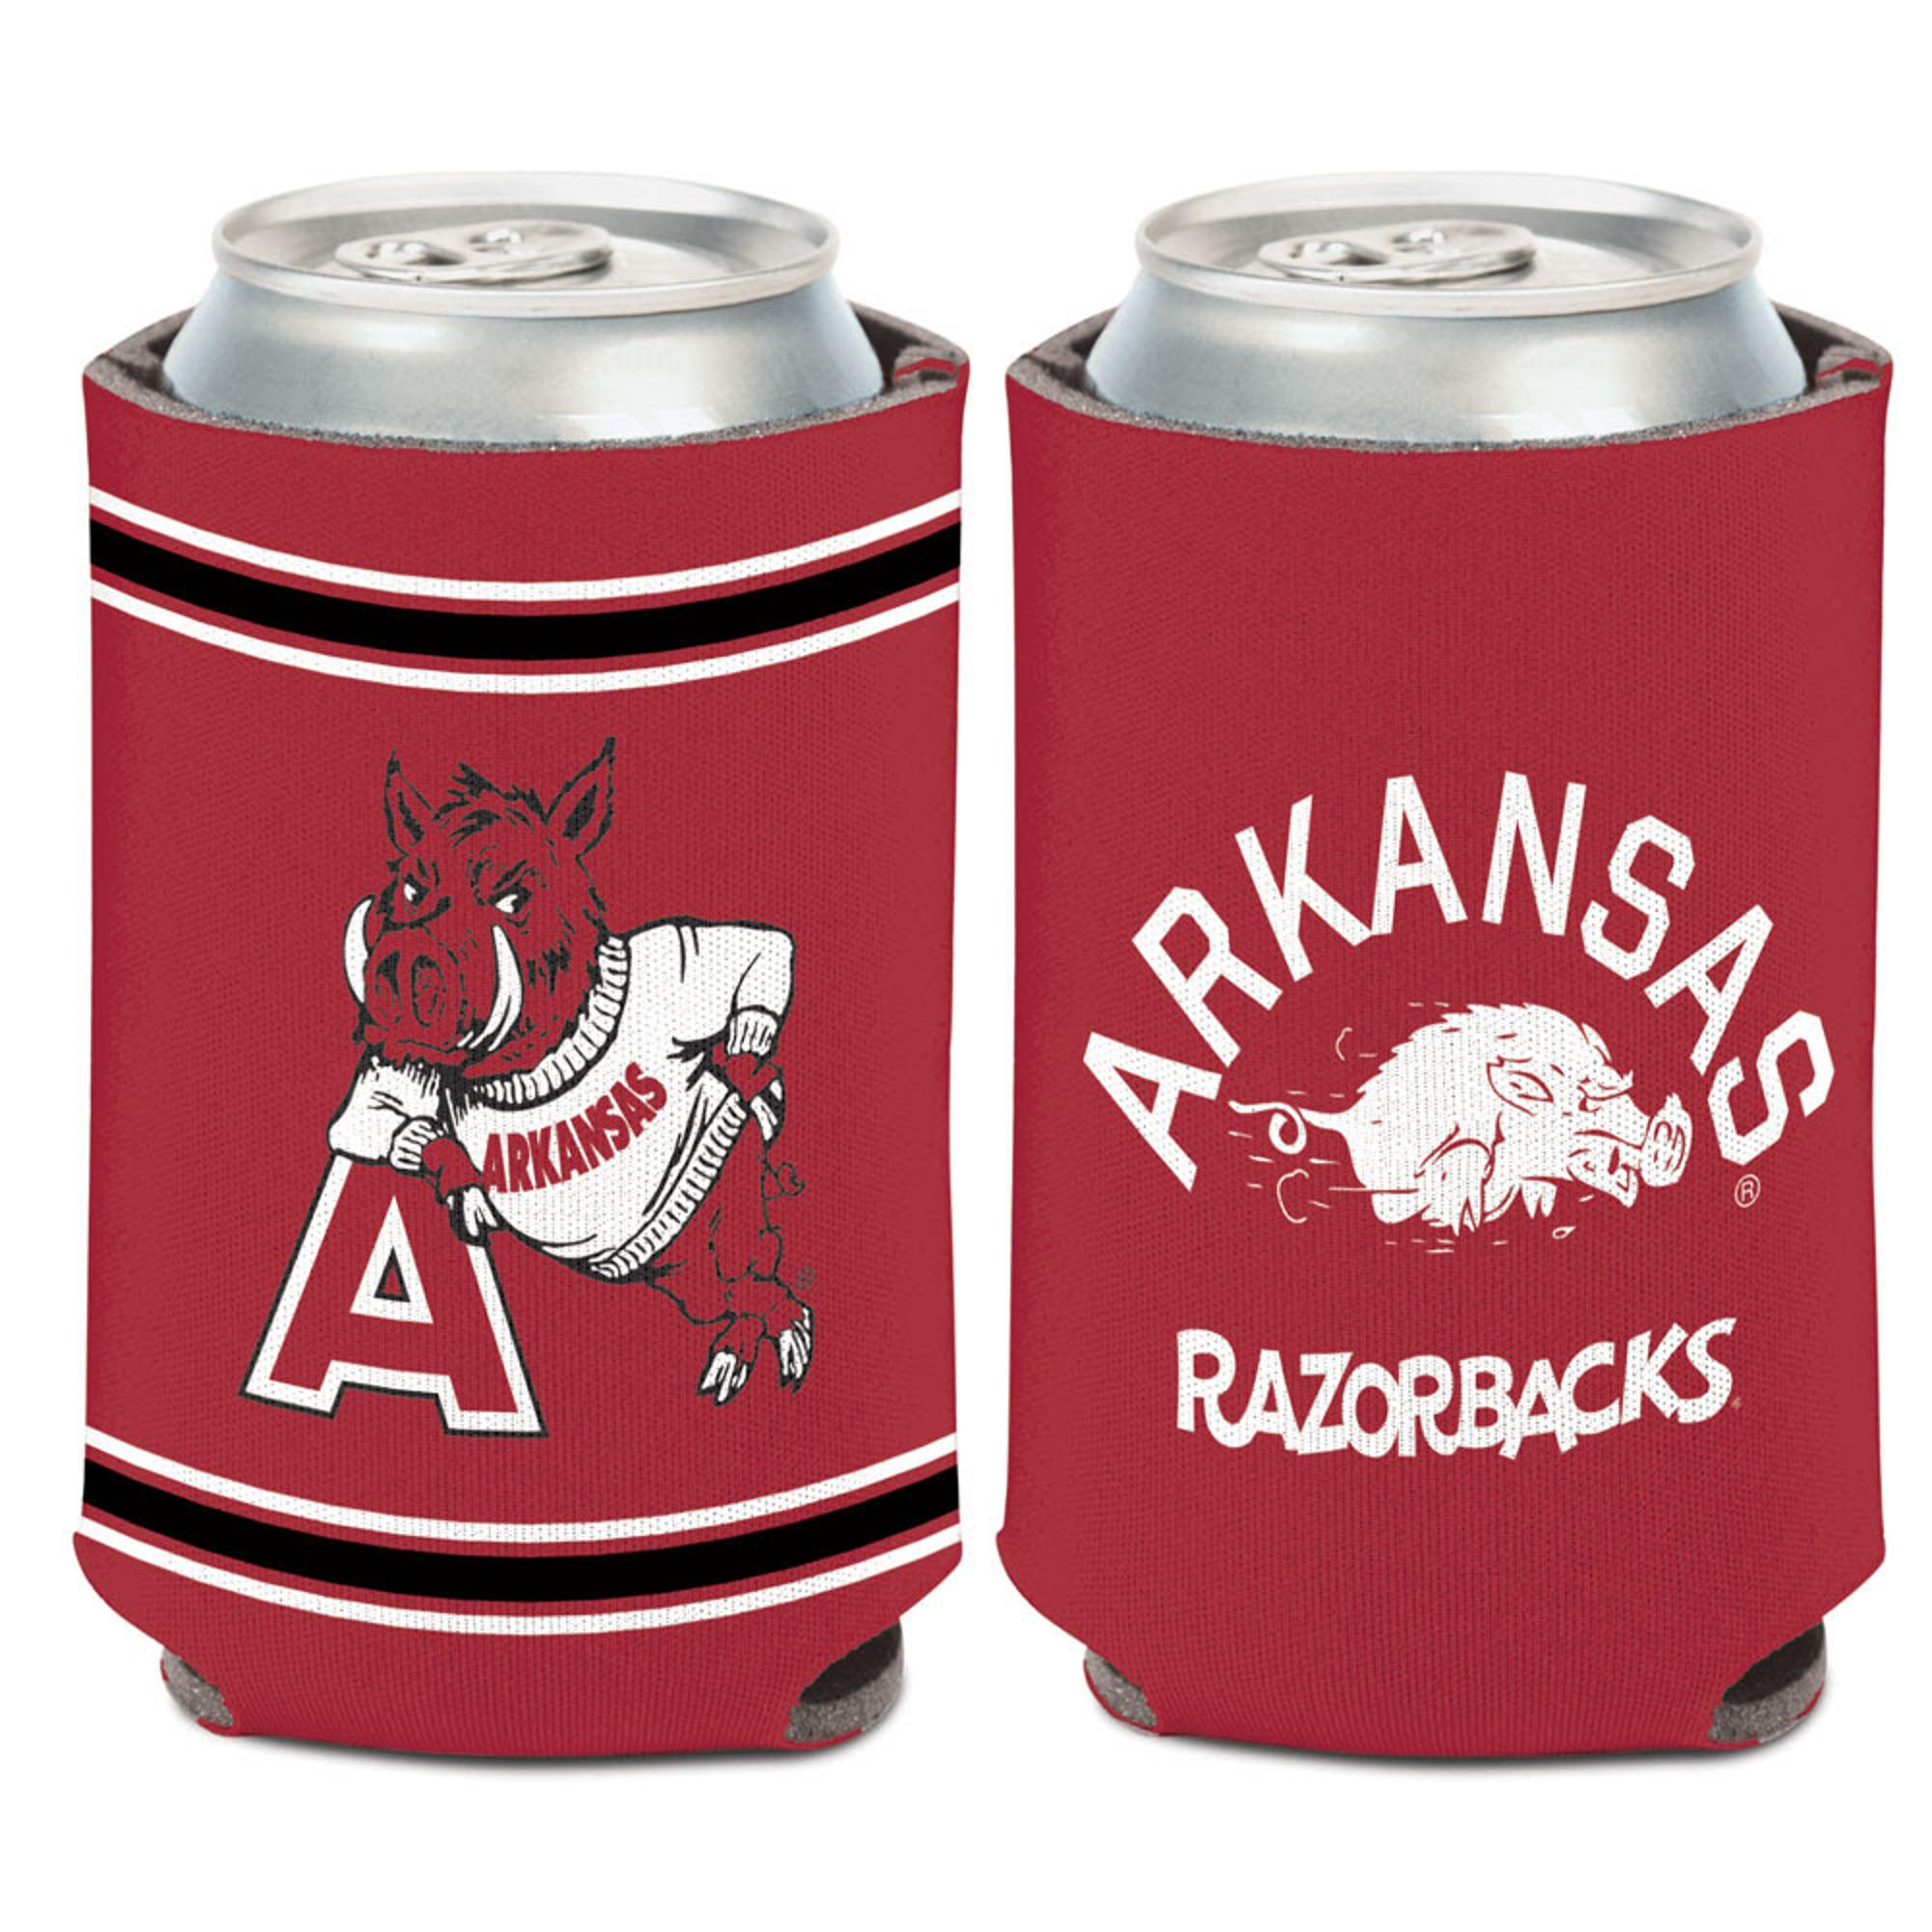 Image for Arkansas Razorbacks Vintage Logos Can Koozie